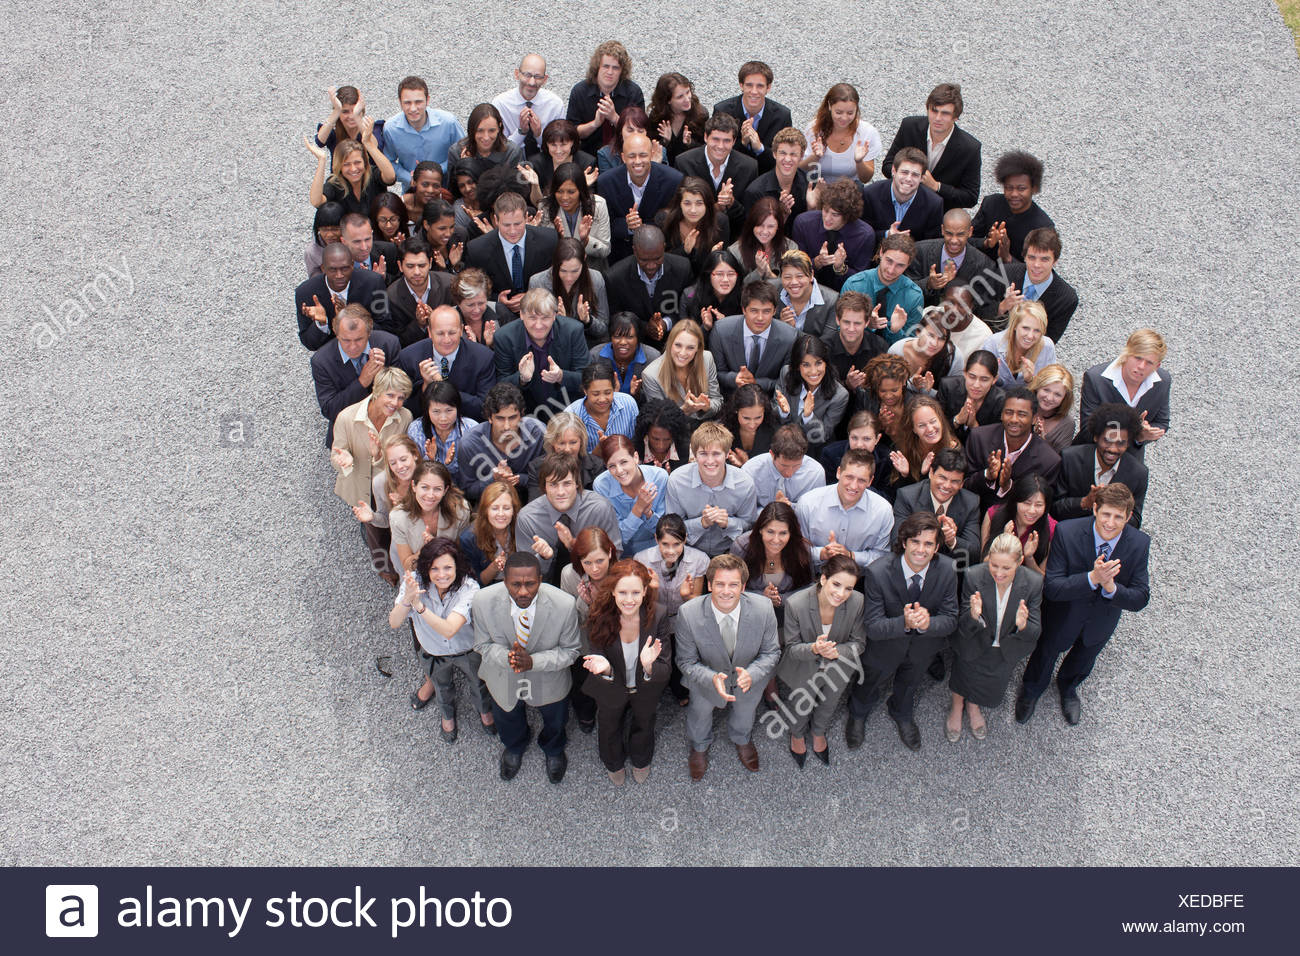 Large group of business people - Stock Image